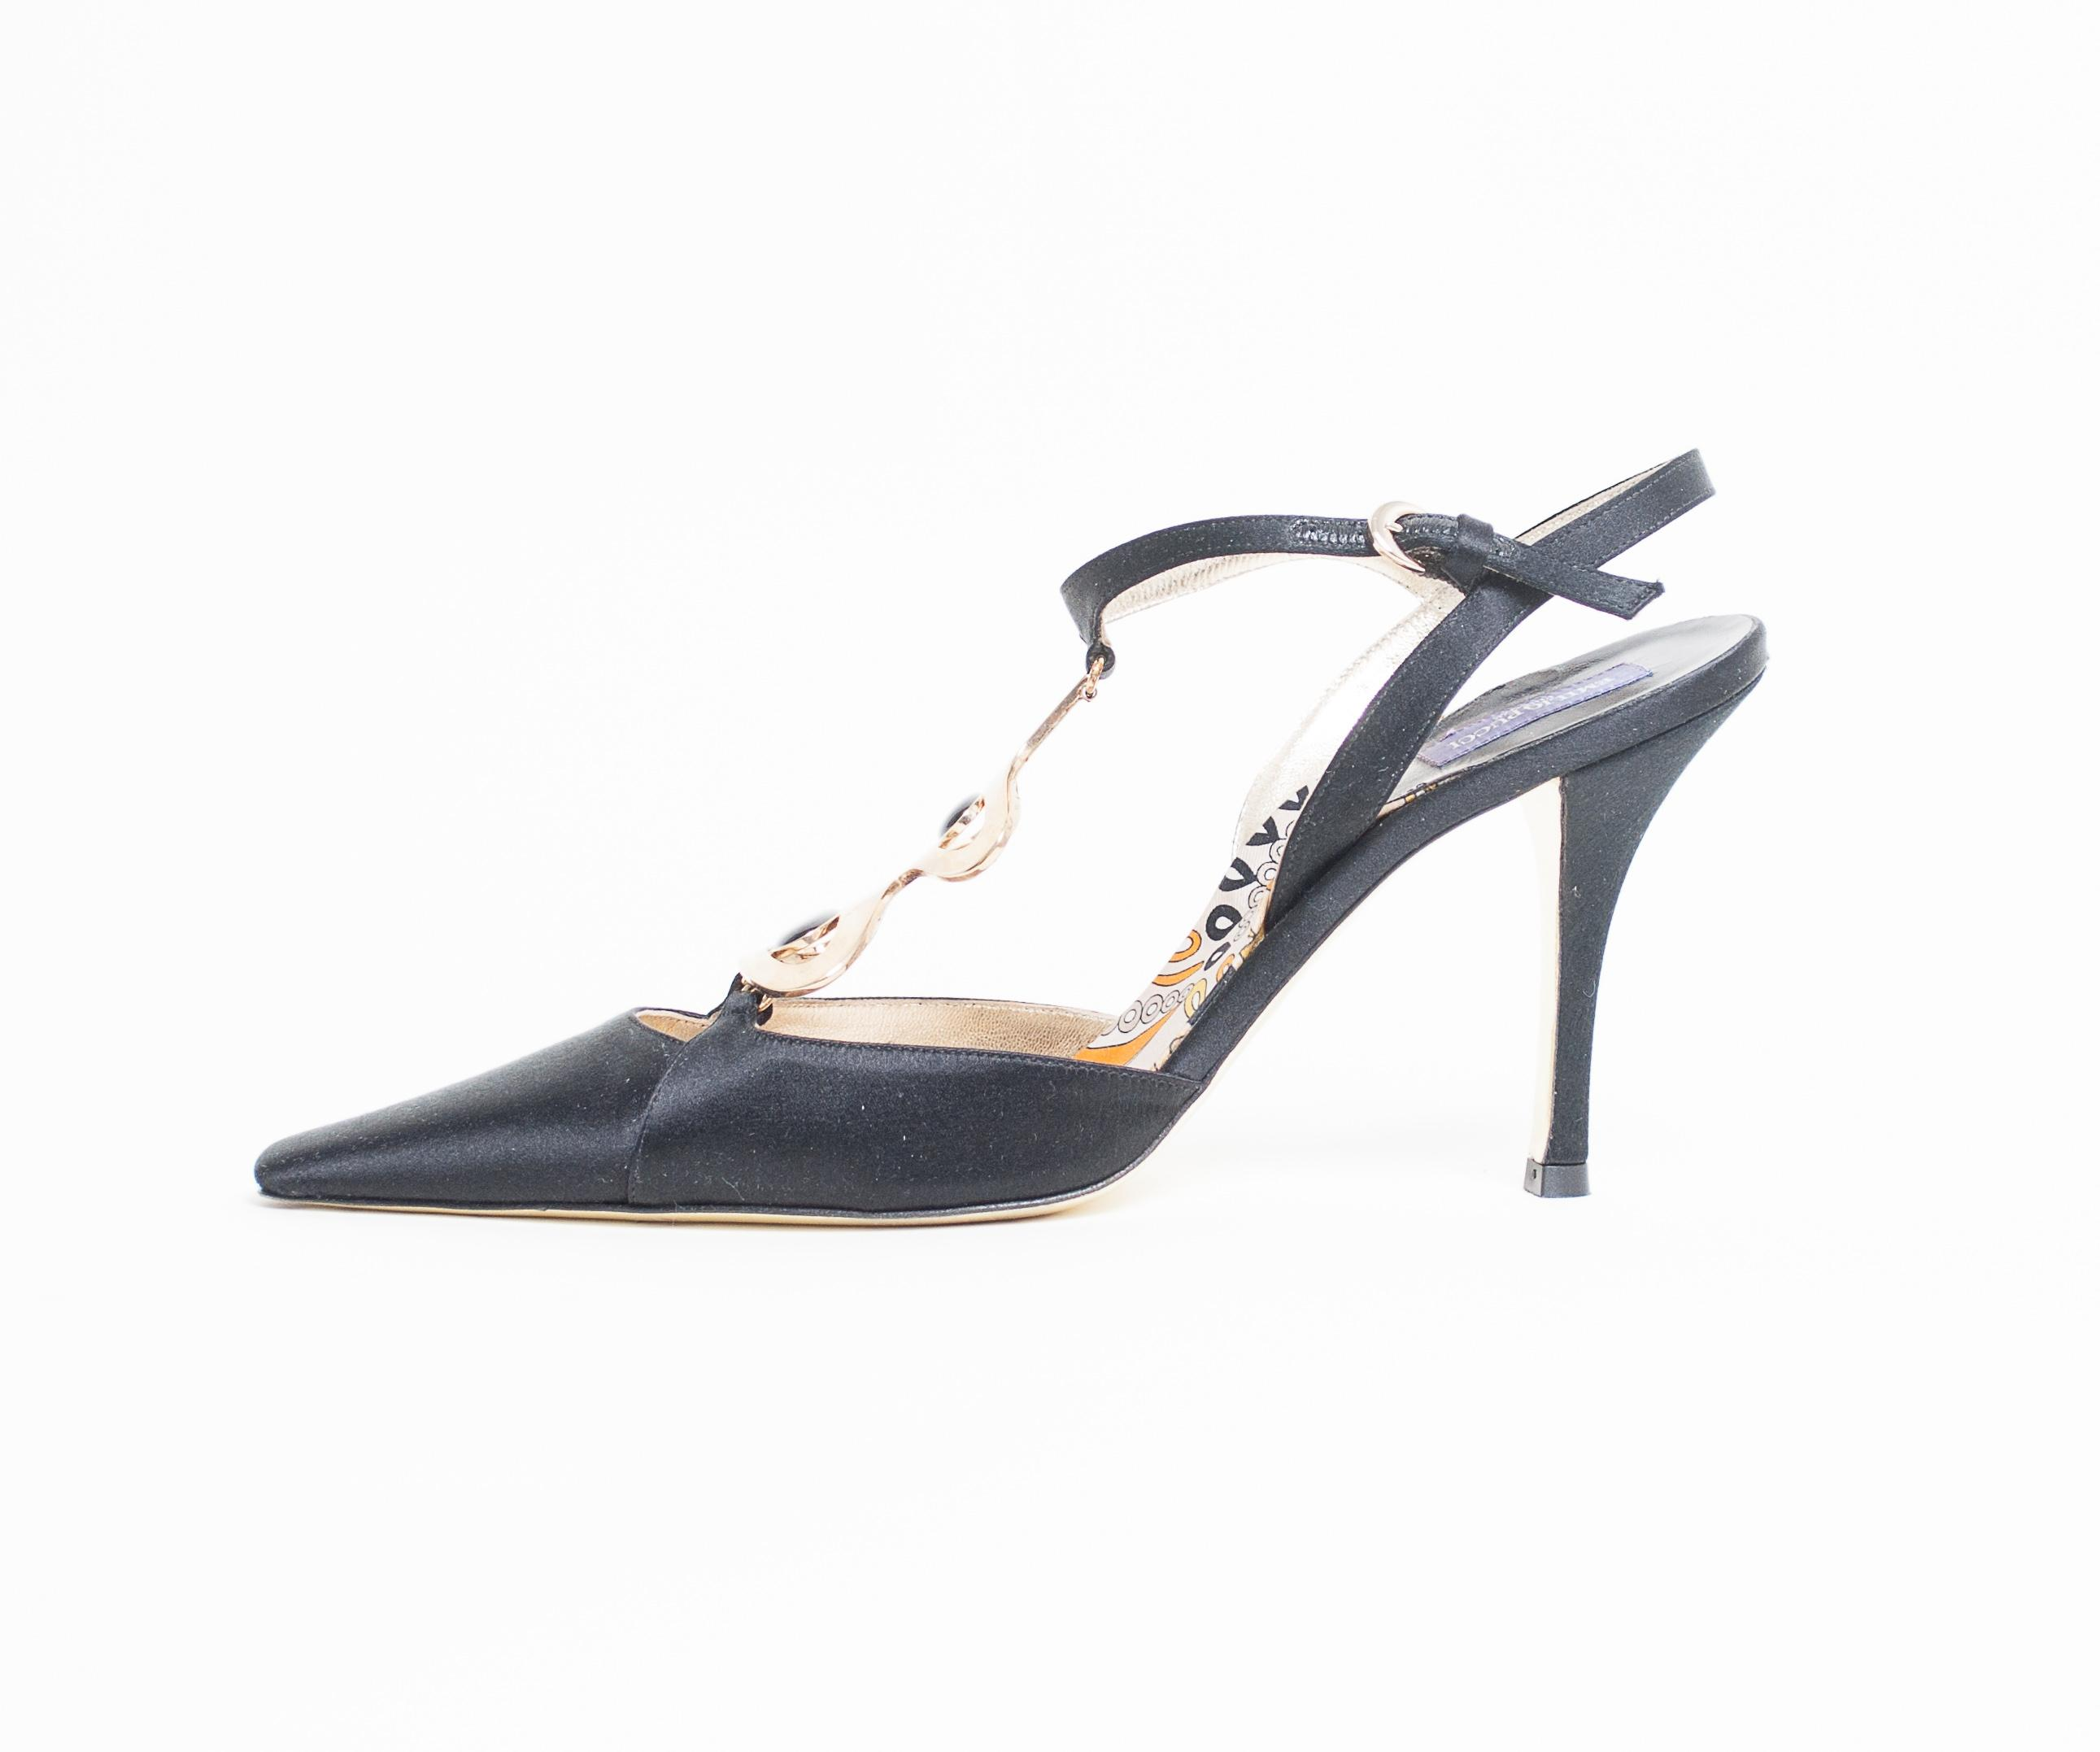 Emilio Pucci Pointed-Toe Satin Pumps sale pay with visa clearance high quality cheap websites visit cheap online buy cheap extremely LDi7GgSU